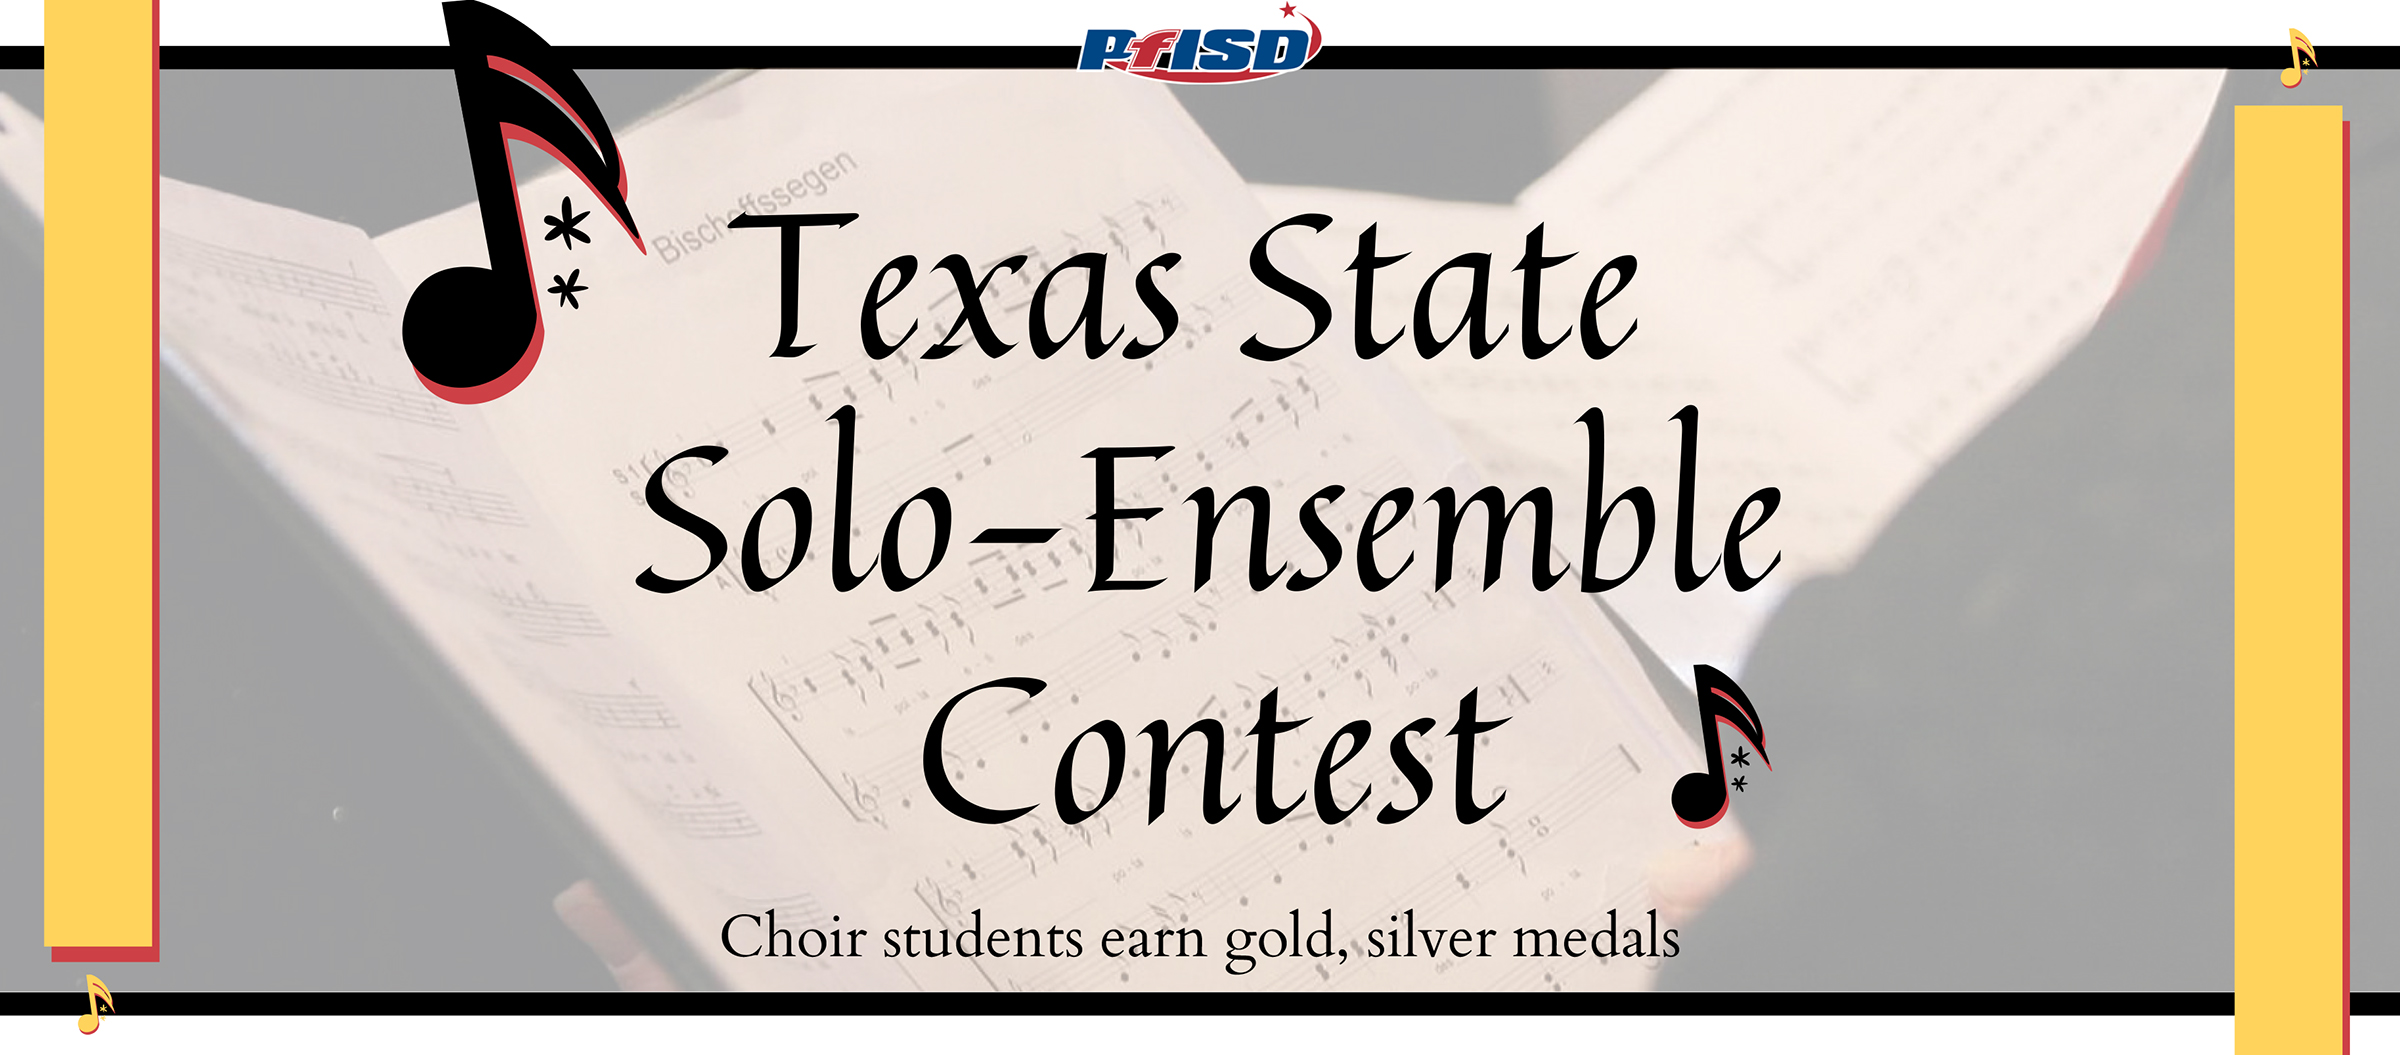 UIL State Solo-Ensemble Contest